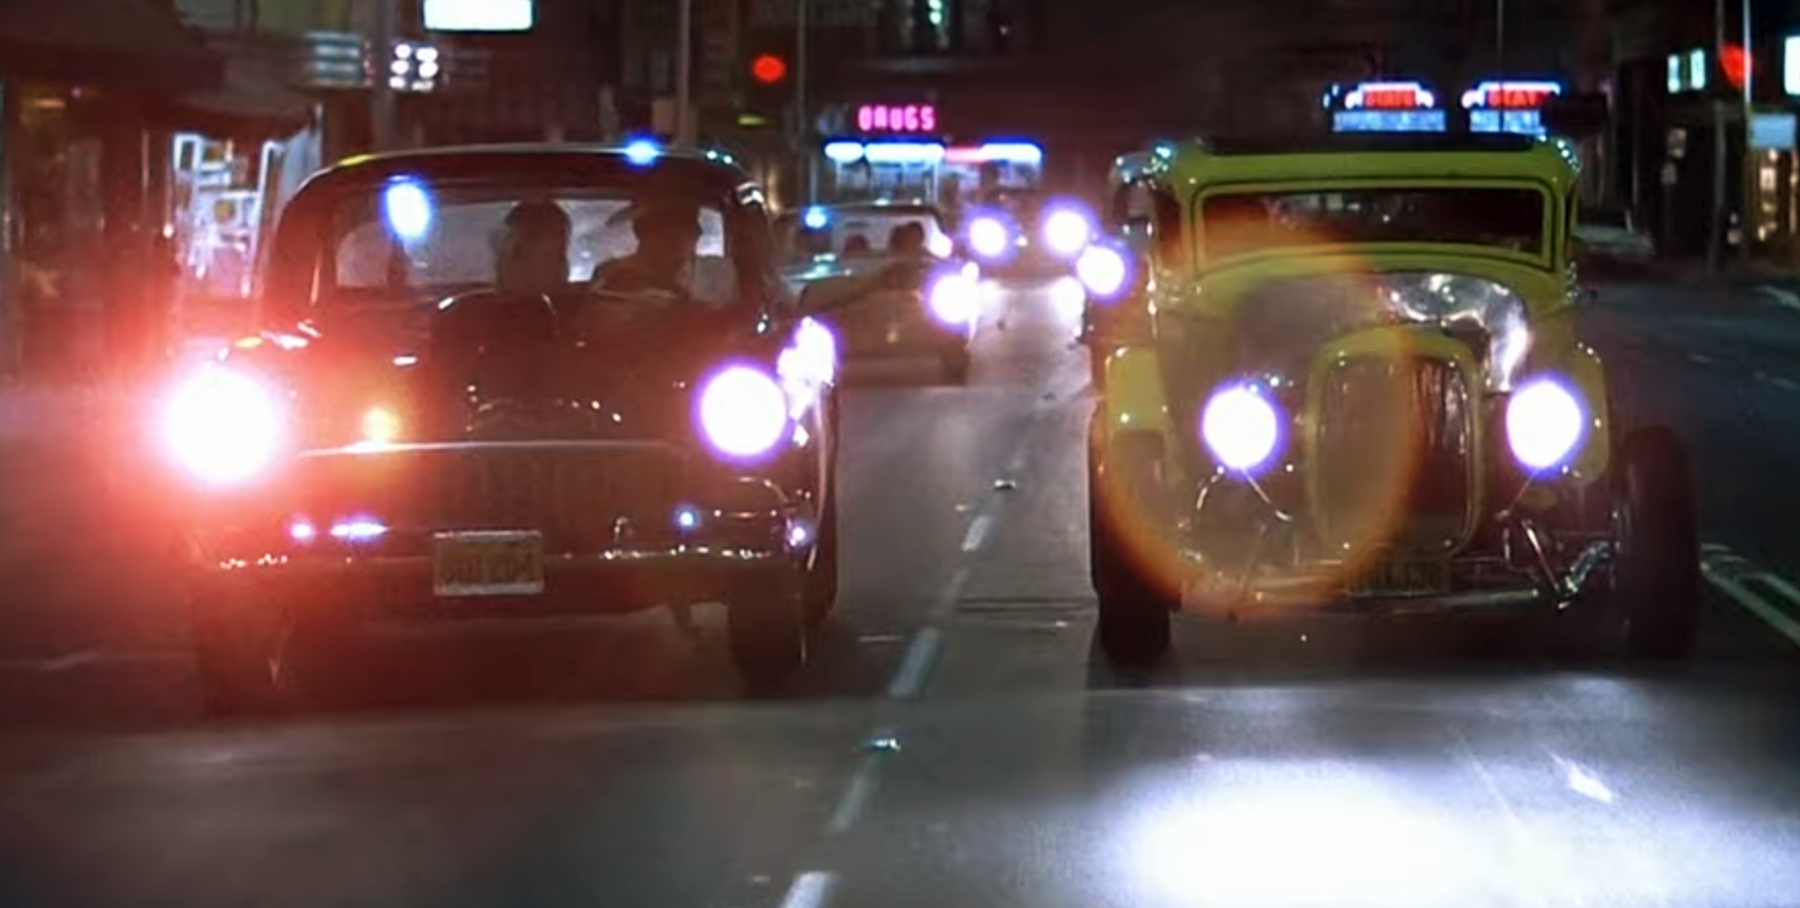 The Cars of American Graffiti